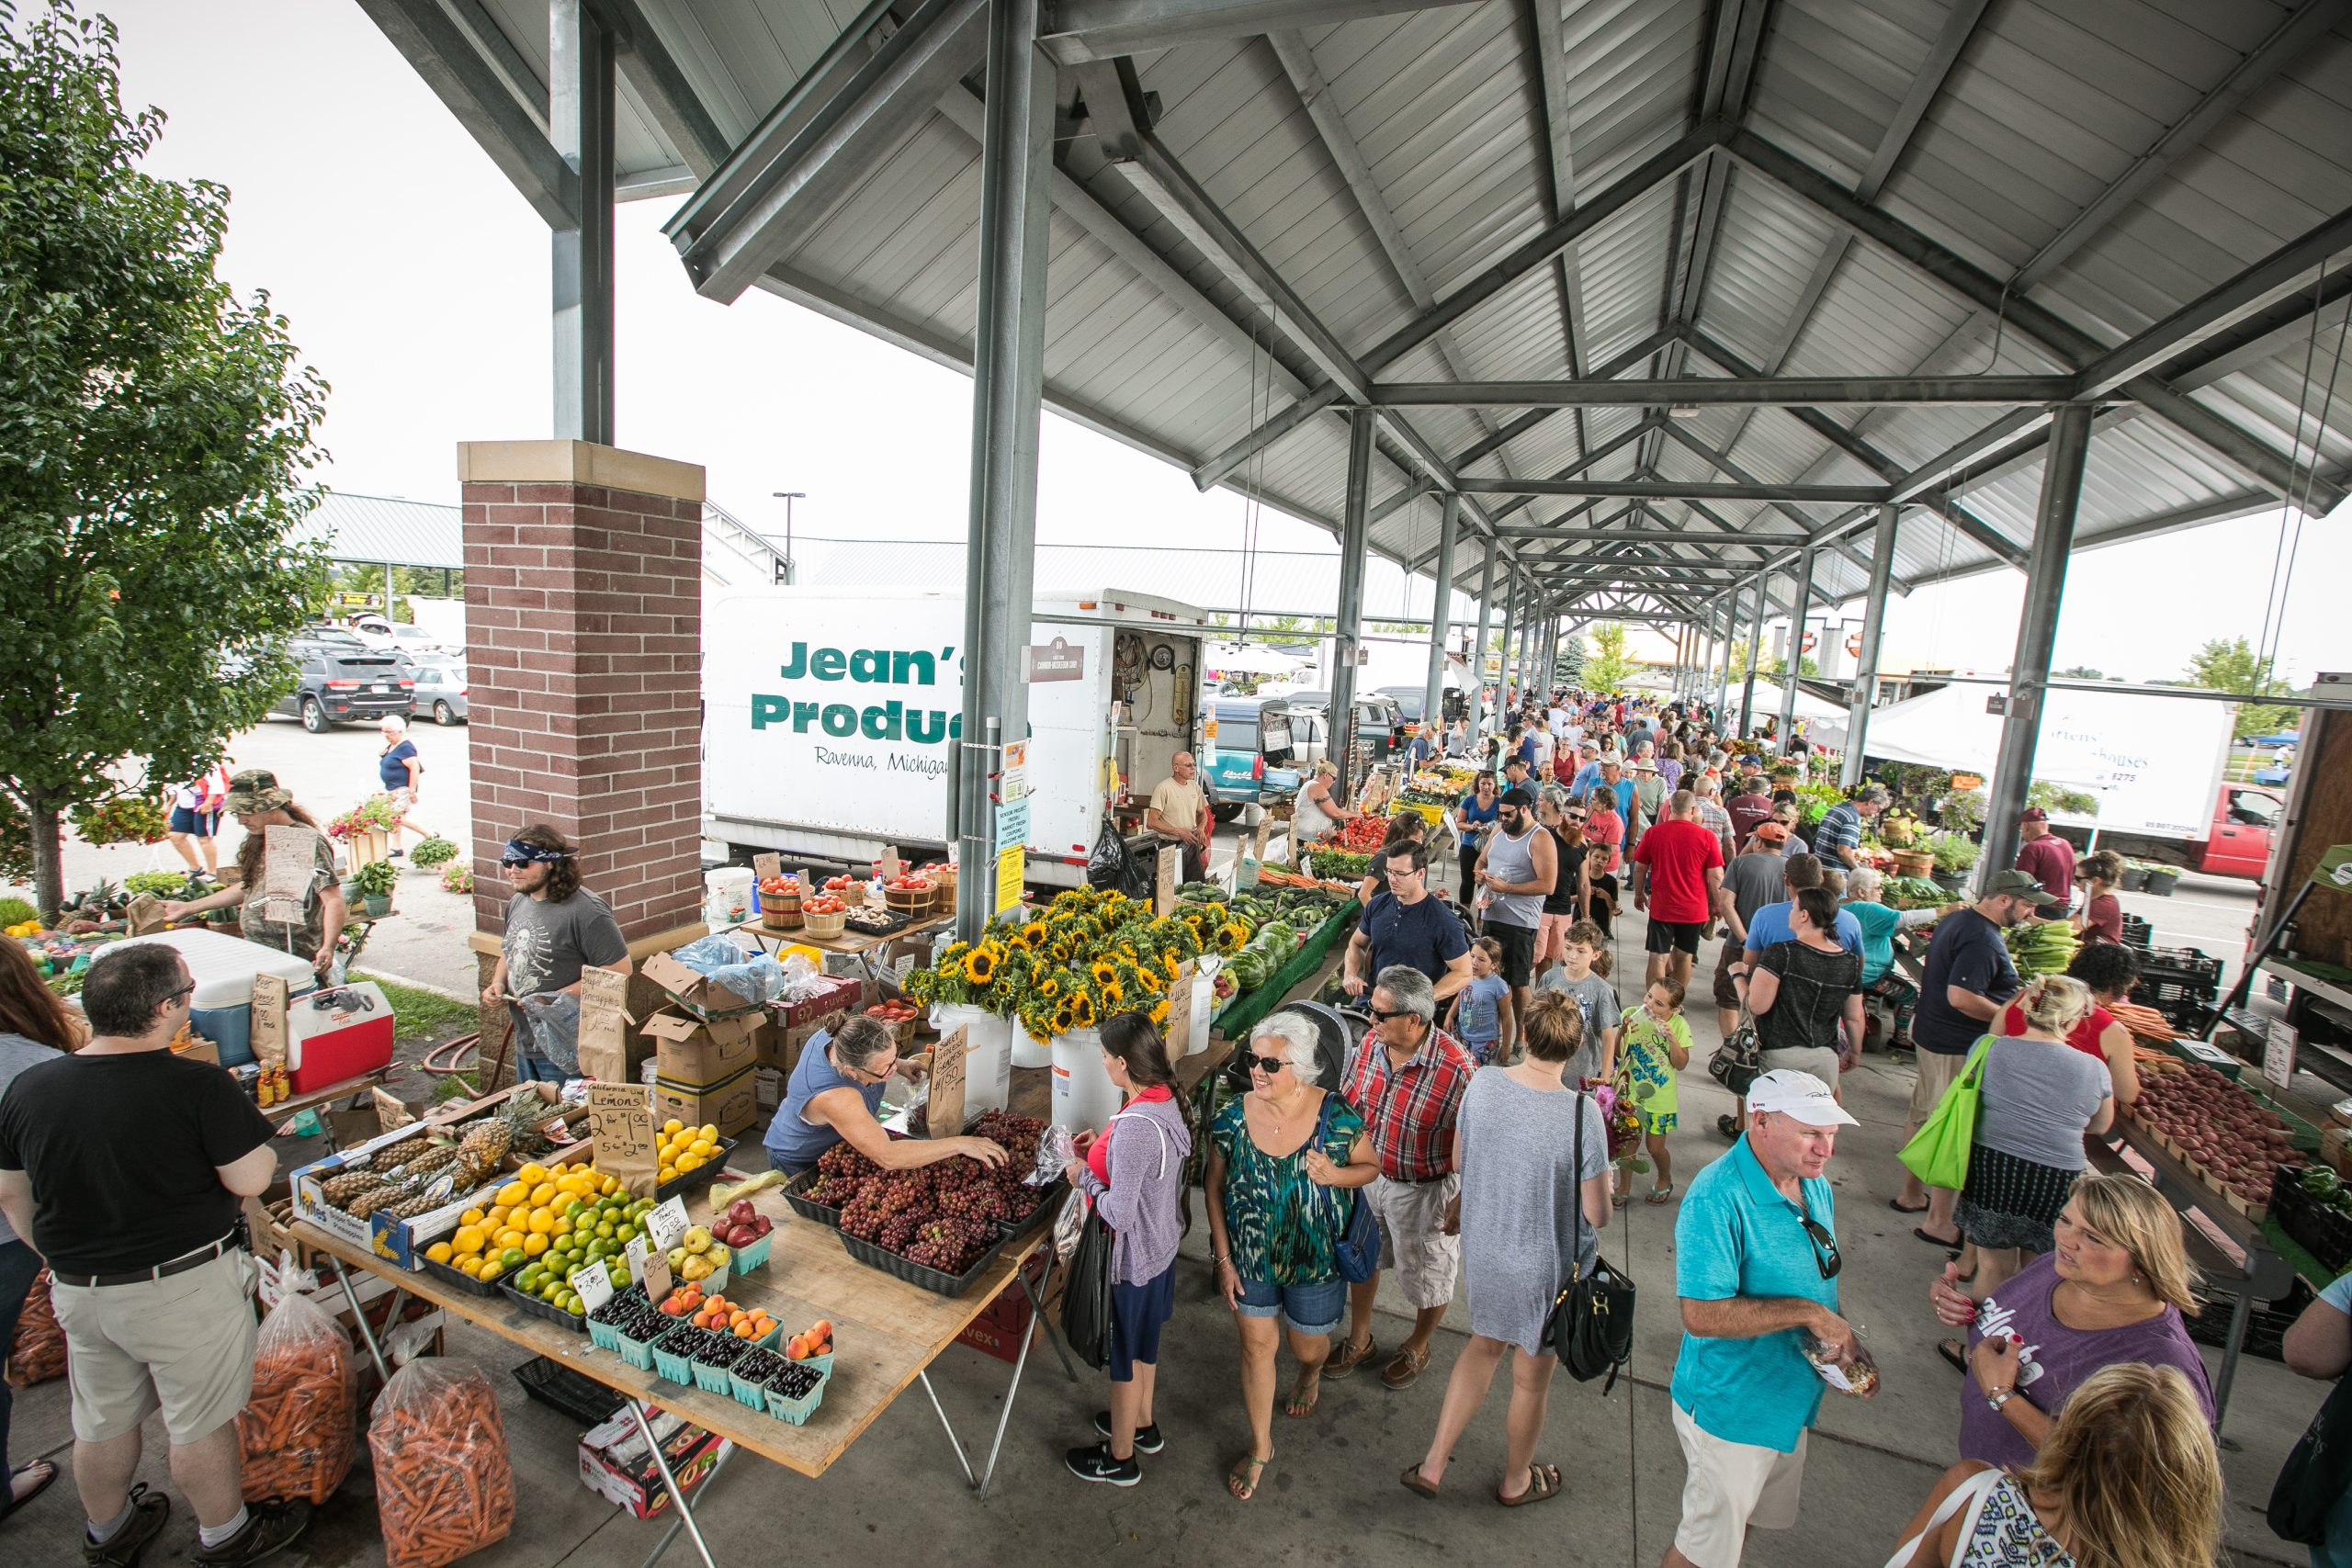 outdoor farmers market shows many shoppers on sidewalk with tables of fresh produce. a vaulted white roof covers them supported by tall white columns